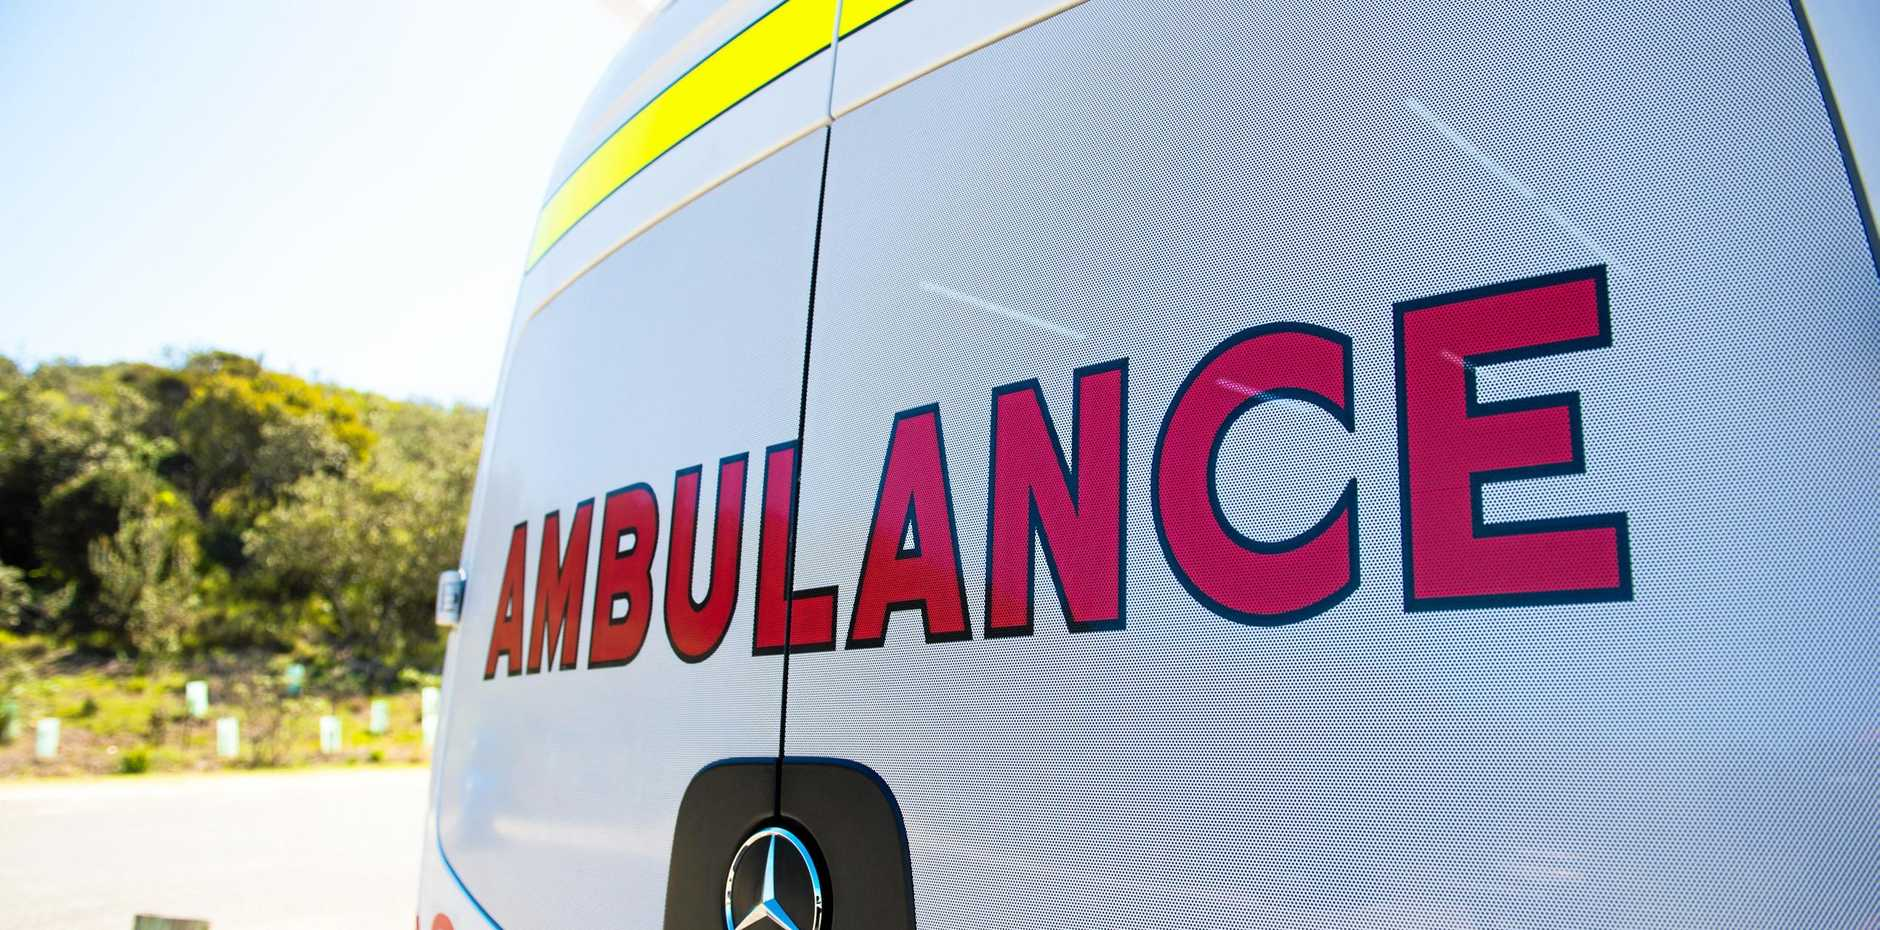 Several motor vehicle accidents Sunday afternoon in Biloela